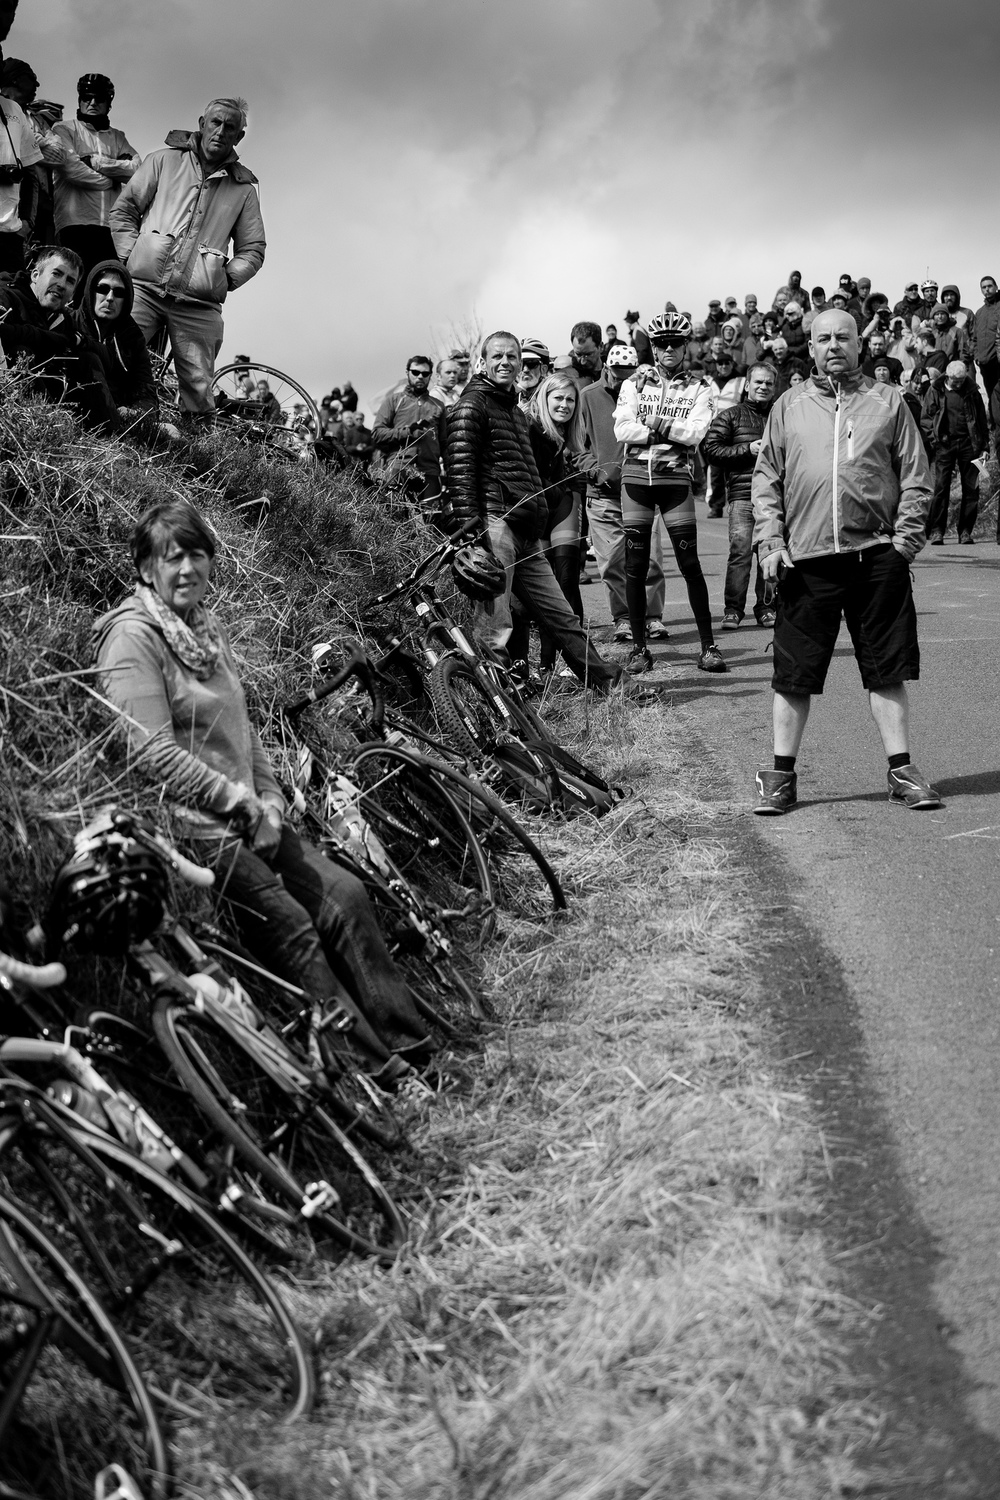 Tour de Yorkshire - Crowd